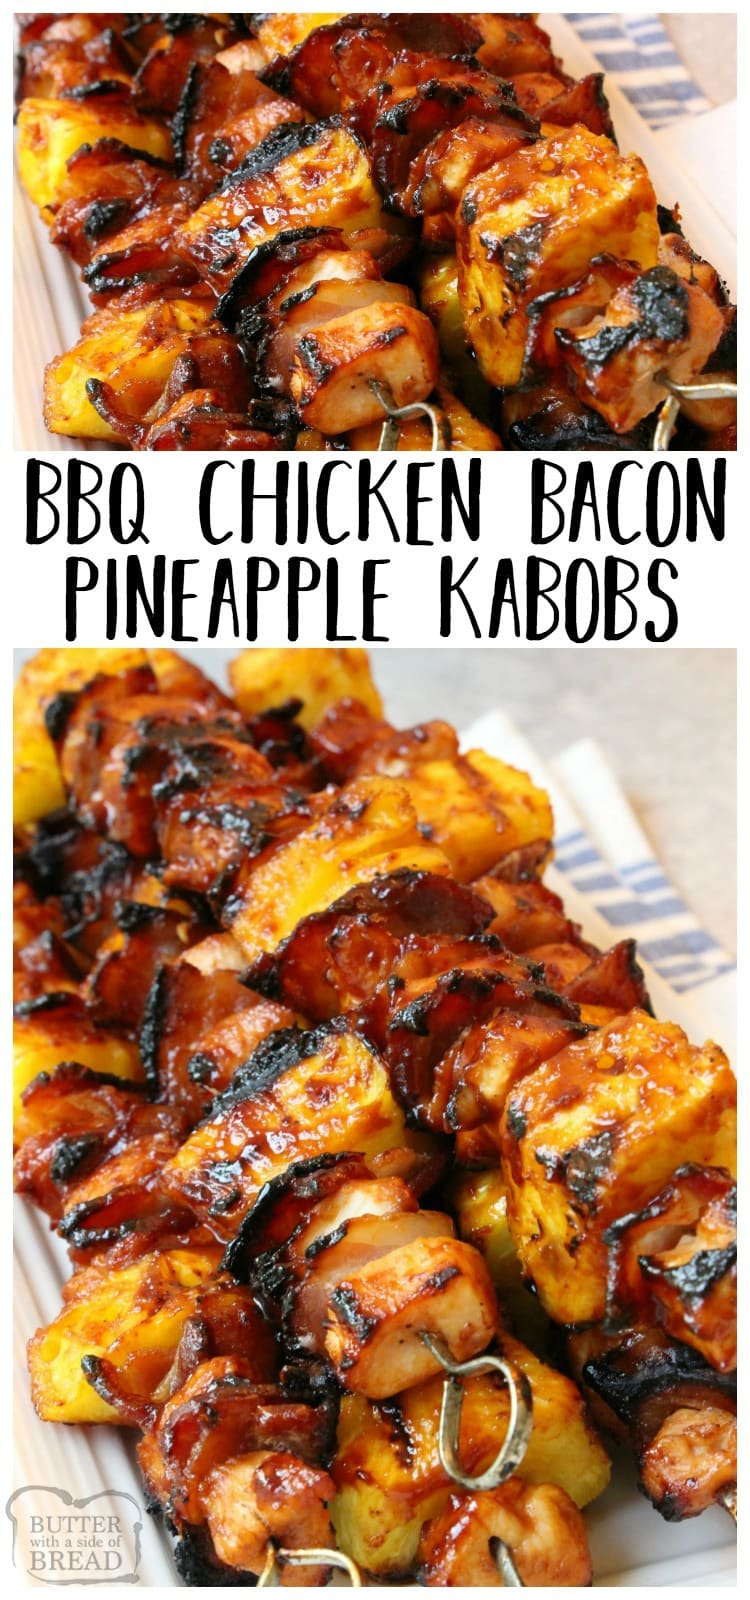 BBQ Chicken Kabobs with Bacon and Pineapple recipe with tender chicken grilled with pineapple and bacon then slathered with your favorite BBQ sauce. These are the ultimate BBQ chicken kabobs and are perfect for your next cookout! Easy and SUPER TASTY BBQ Chicken Kabob recipe from Butter With A Side of Bread #chicken #bbq #kabobs #grill #grilling #bbqchicken #bacon #dinner #recipe